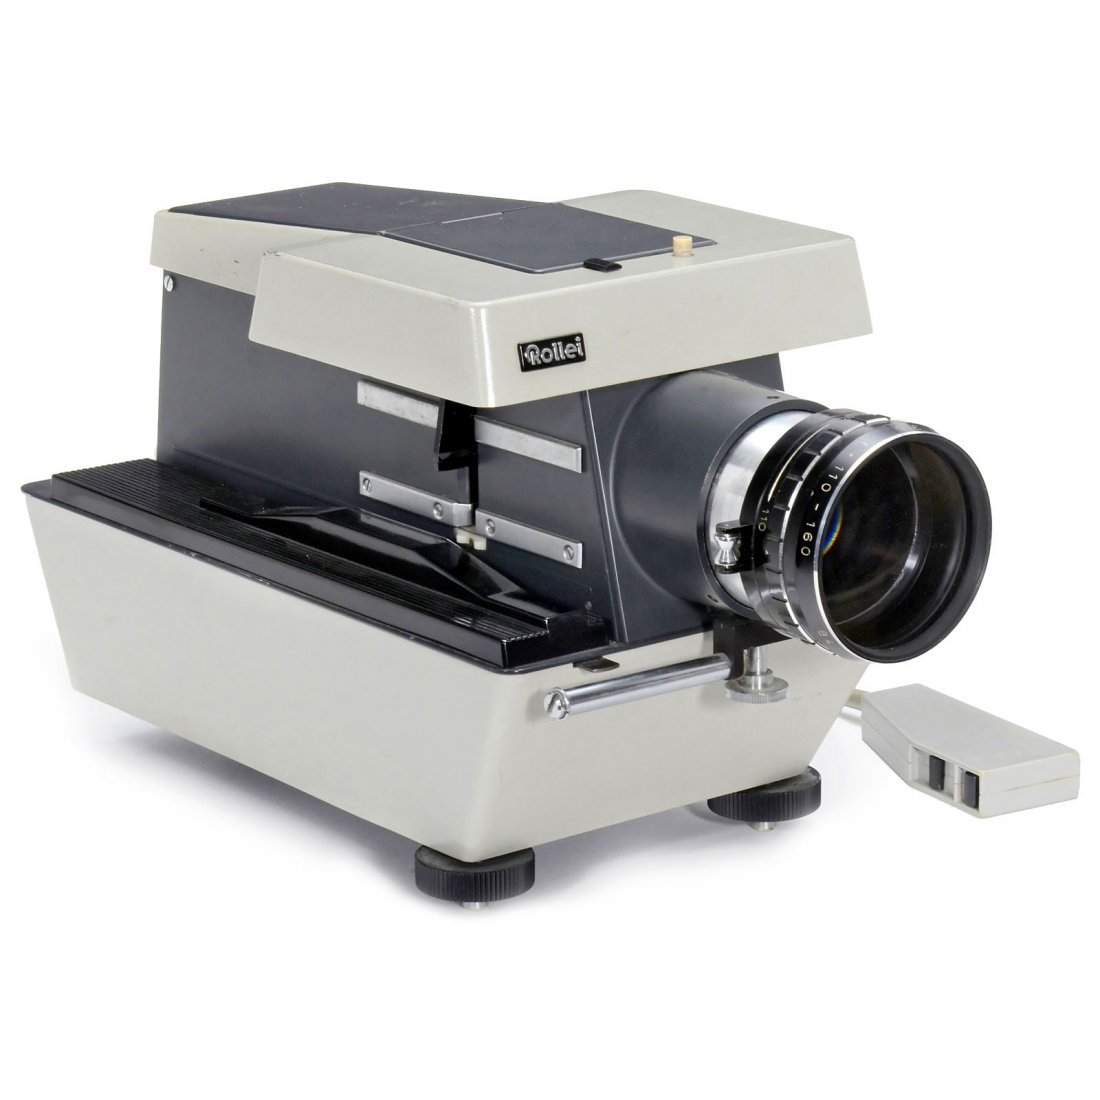 Rollei Universal Projector P11